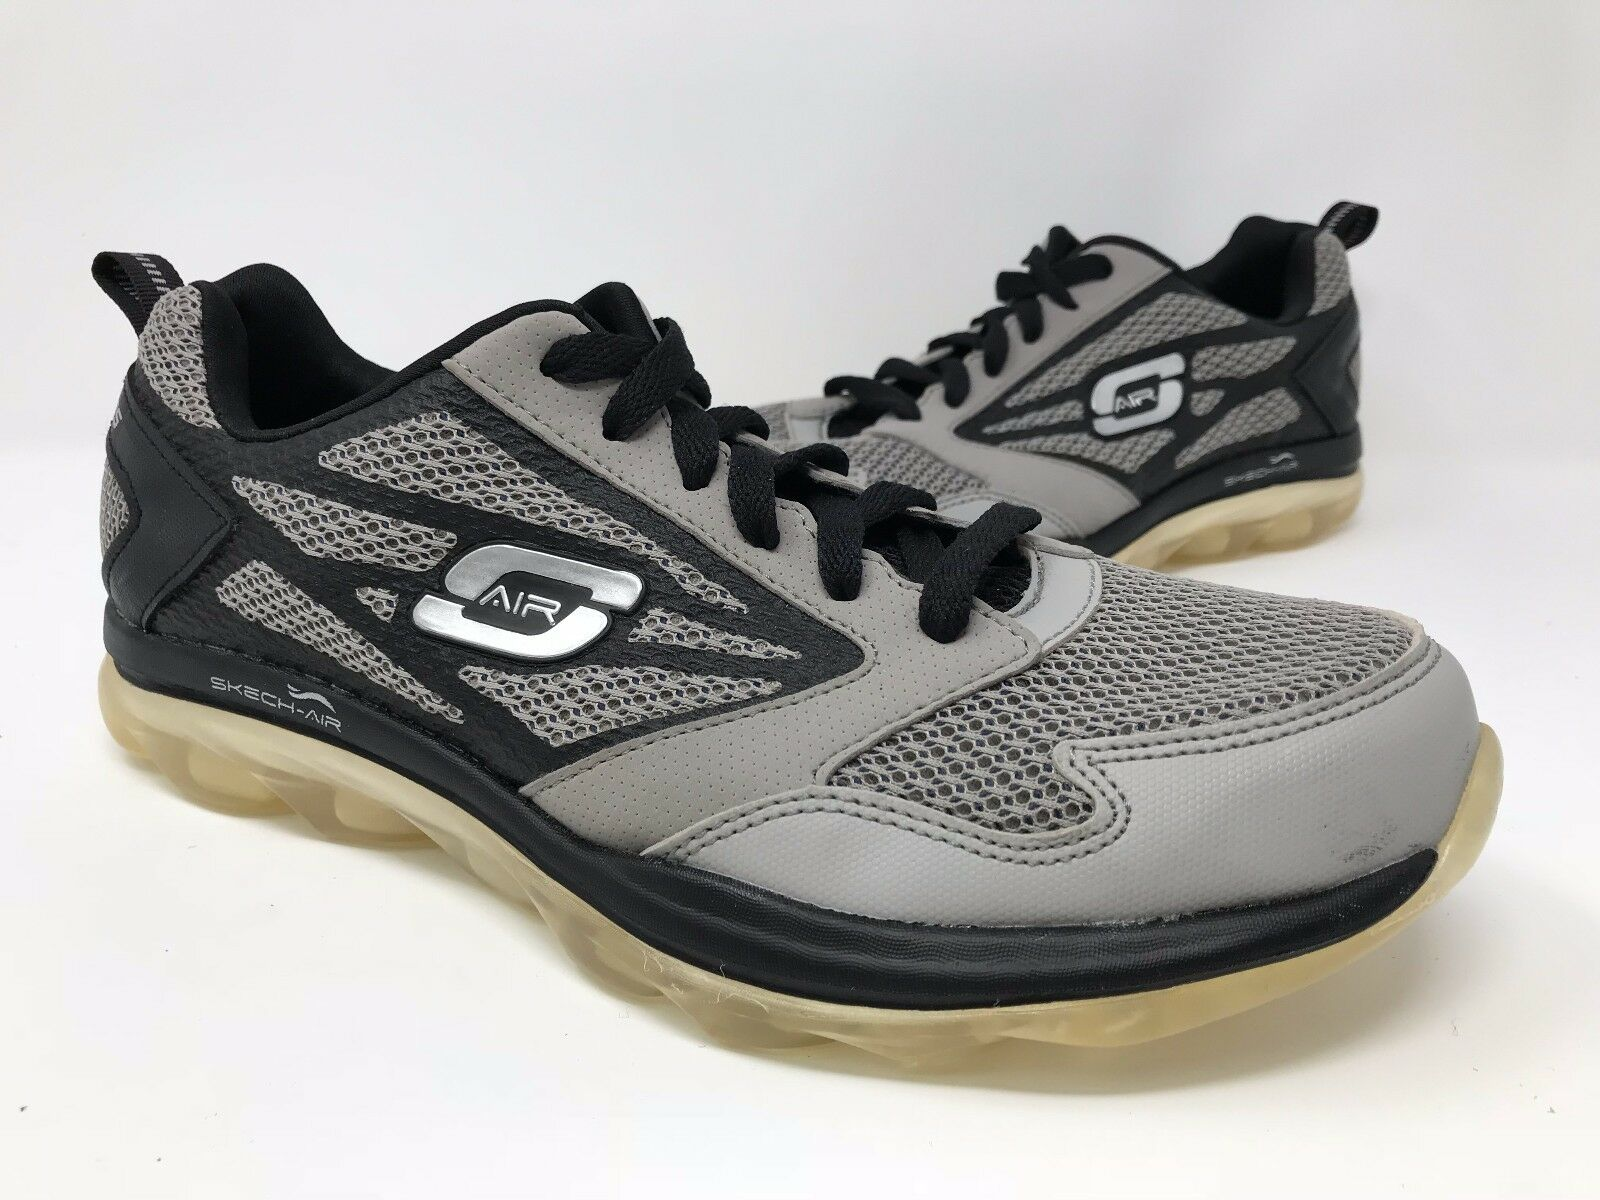 New! Men Skechers 51438 Skech Air Training Shoes - SIZE 7.5 Grey N41 Wild casual shoes